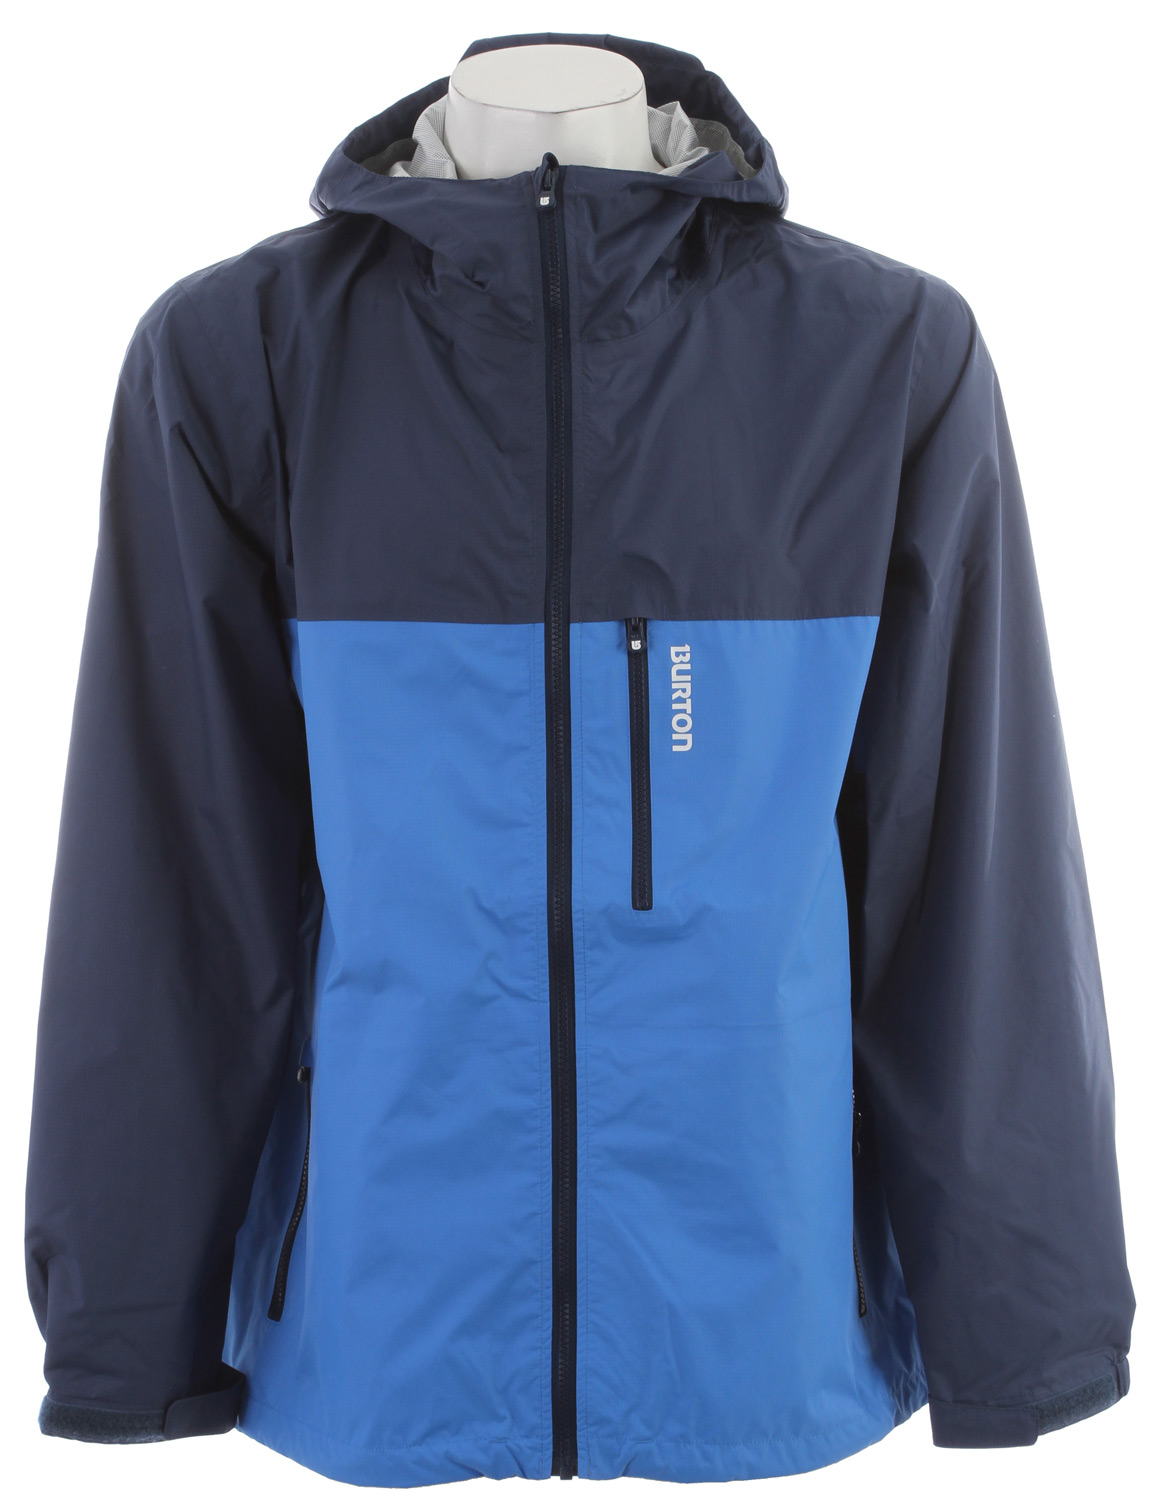 Snowboard Elemental resistance - wind or rain, a dry decision for when the weather is undecided.Key Features of the Burton Dover Jacket: 100% Micro Polyester AirTech® Fabric with DRYRIDE Mist-Defy Street Fit Microcell Mesh Lining Screen Printed Logo at Chest - $89.95